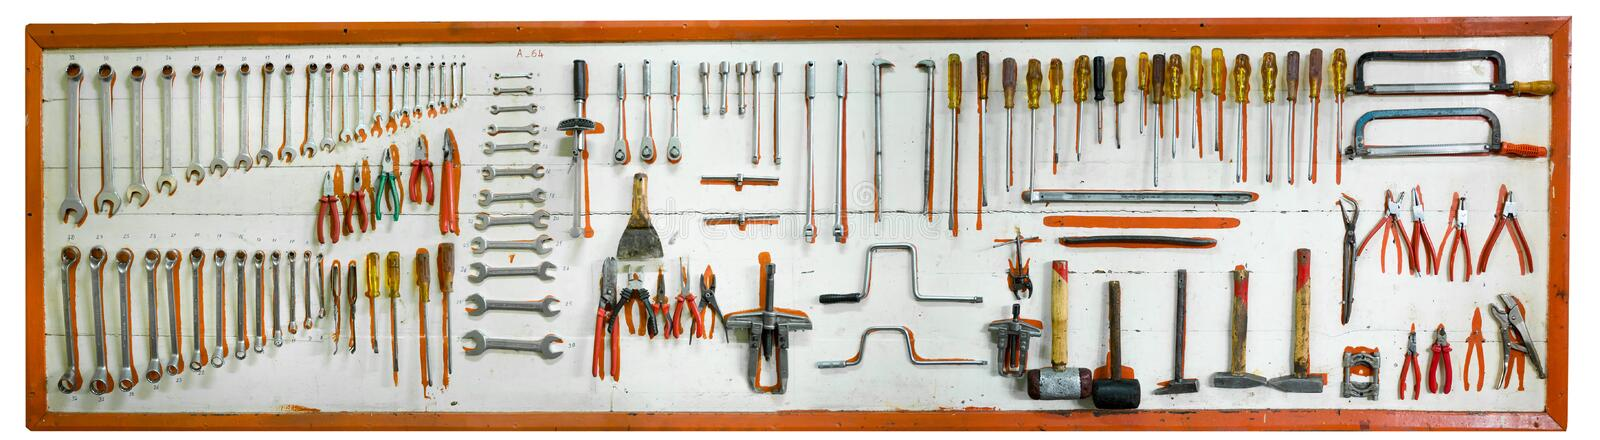 Car mechanic tools. On a wall royalty free stock photography